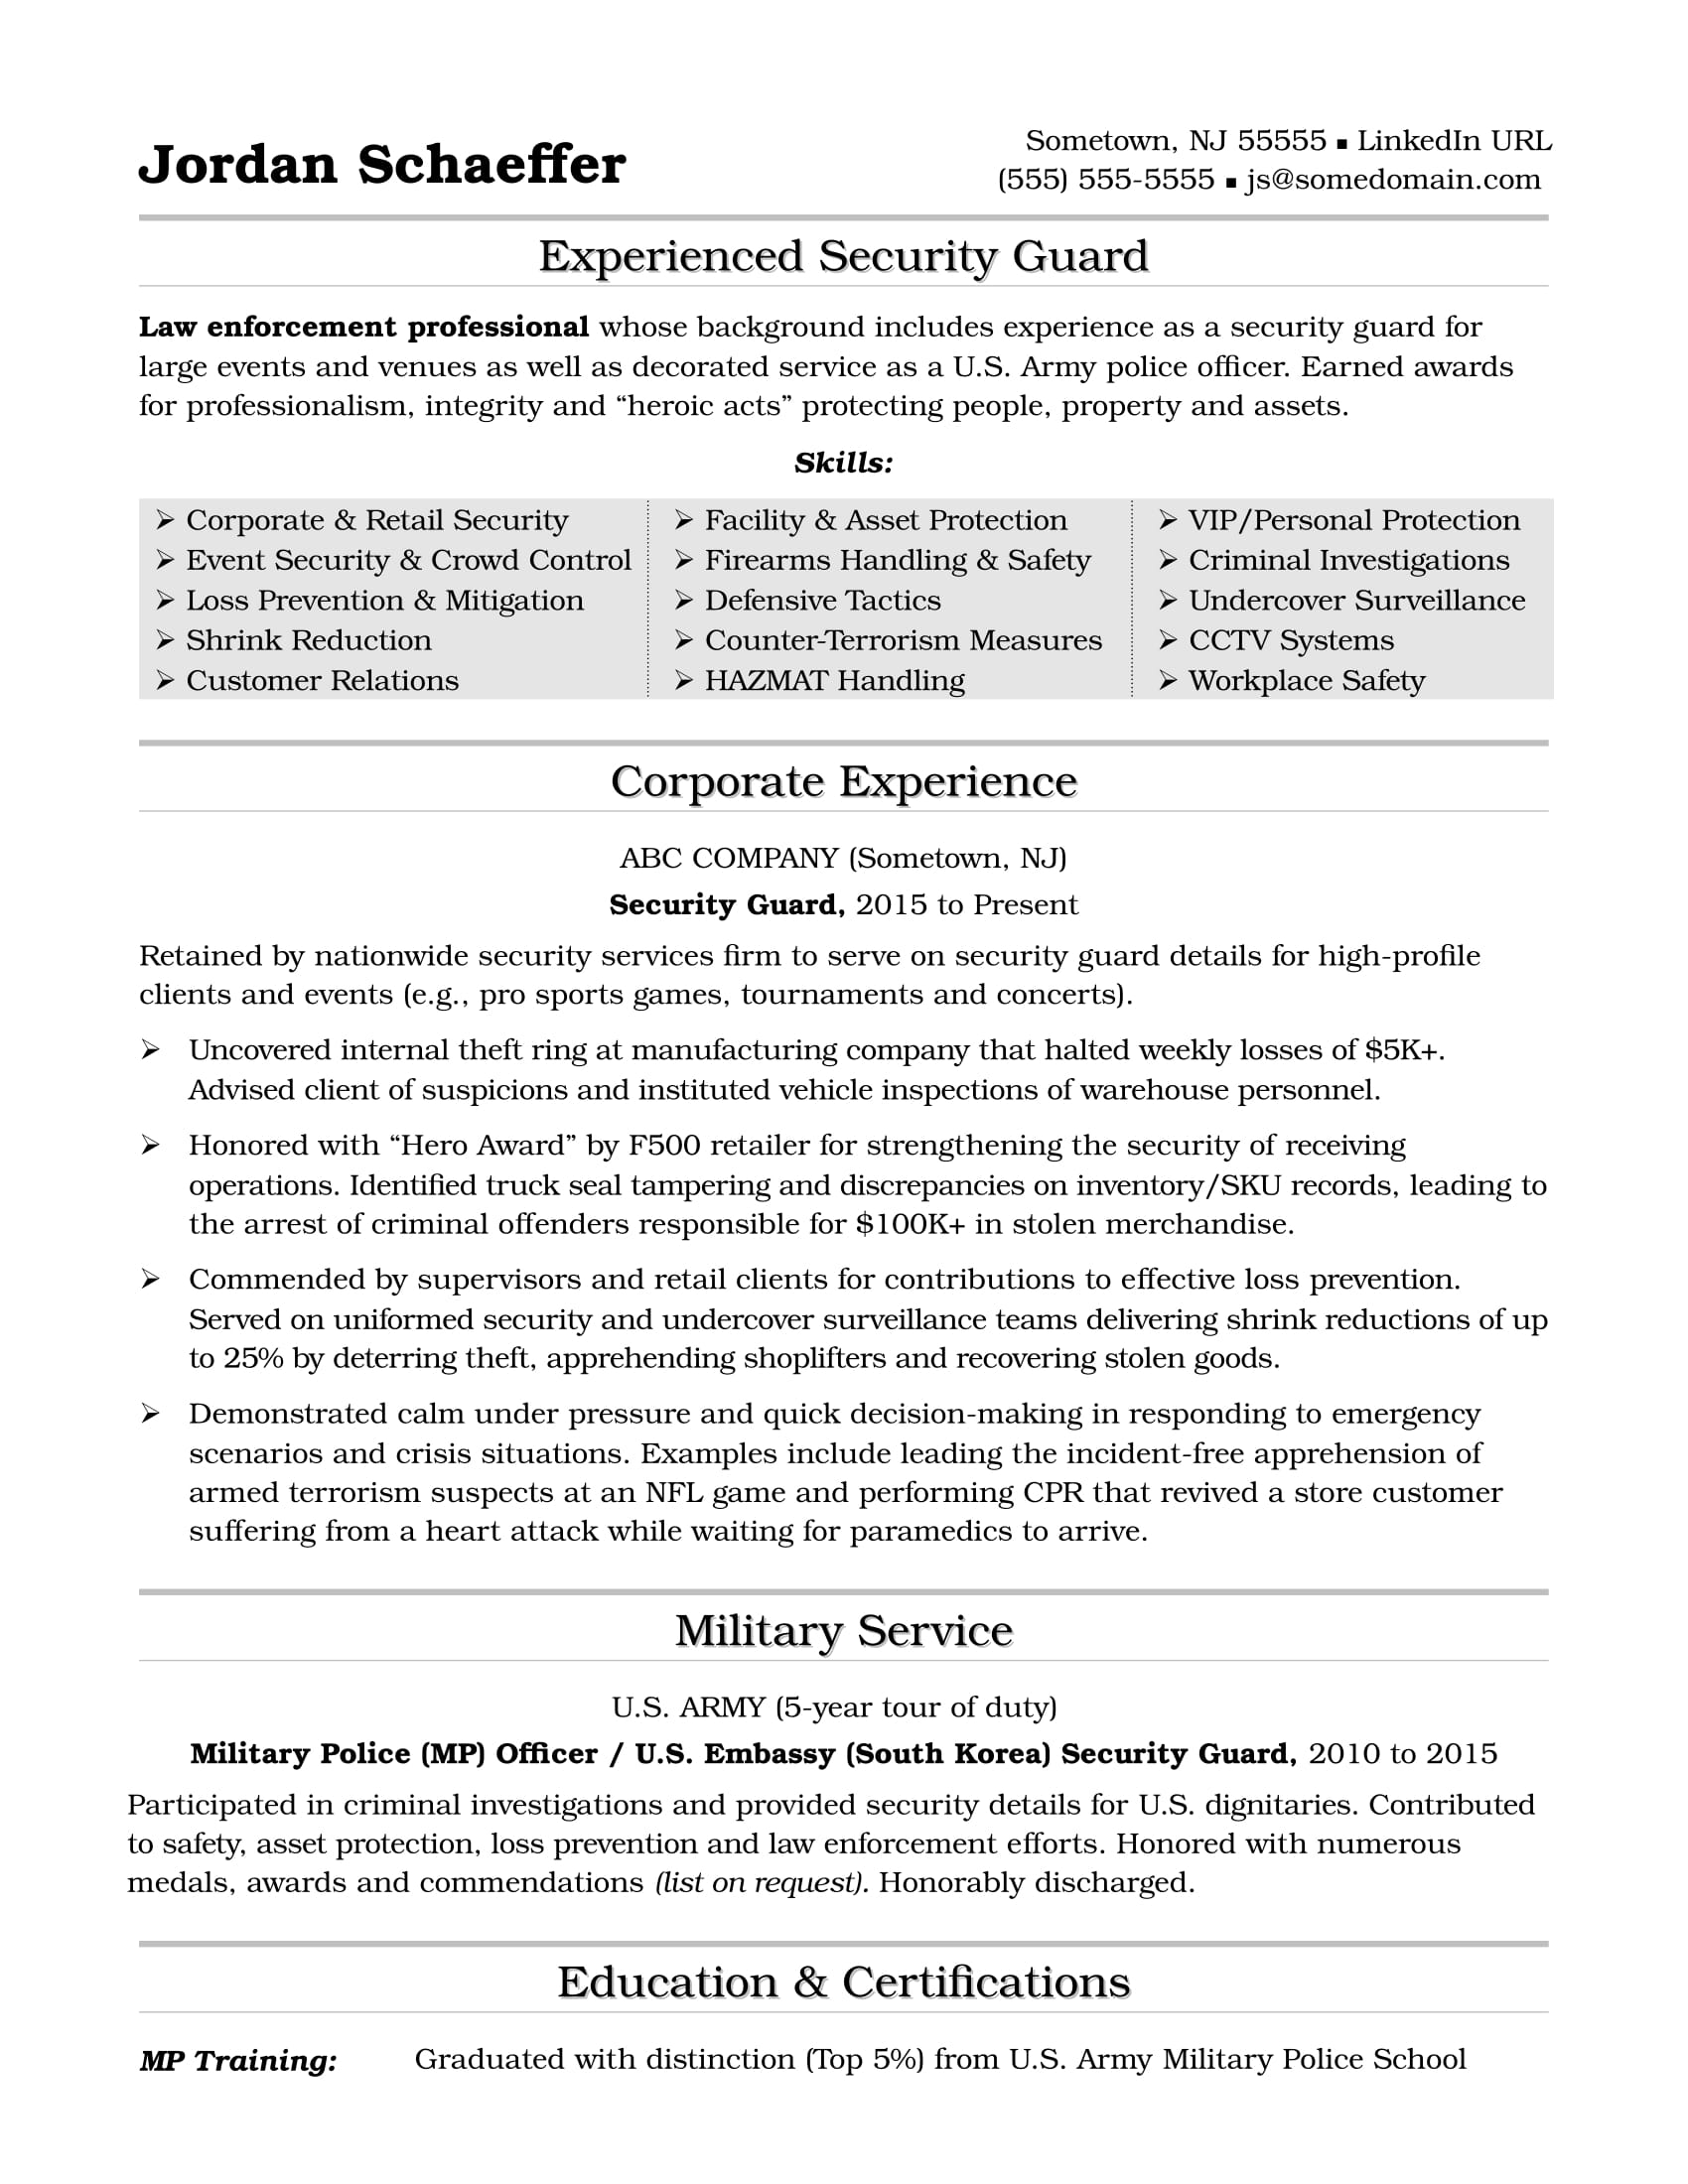 security guard resume sample - Resume For Security Guard